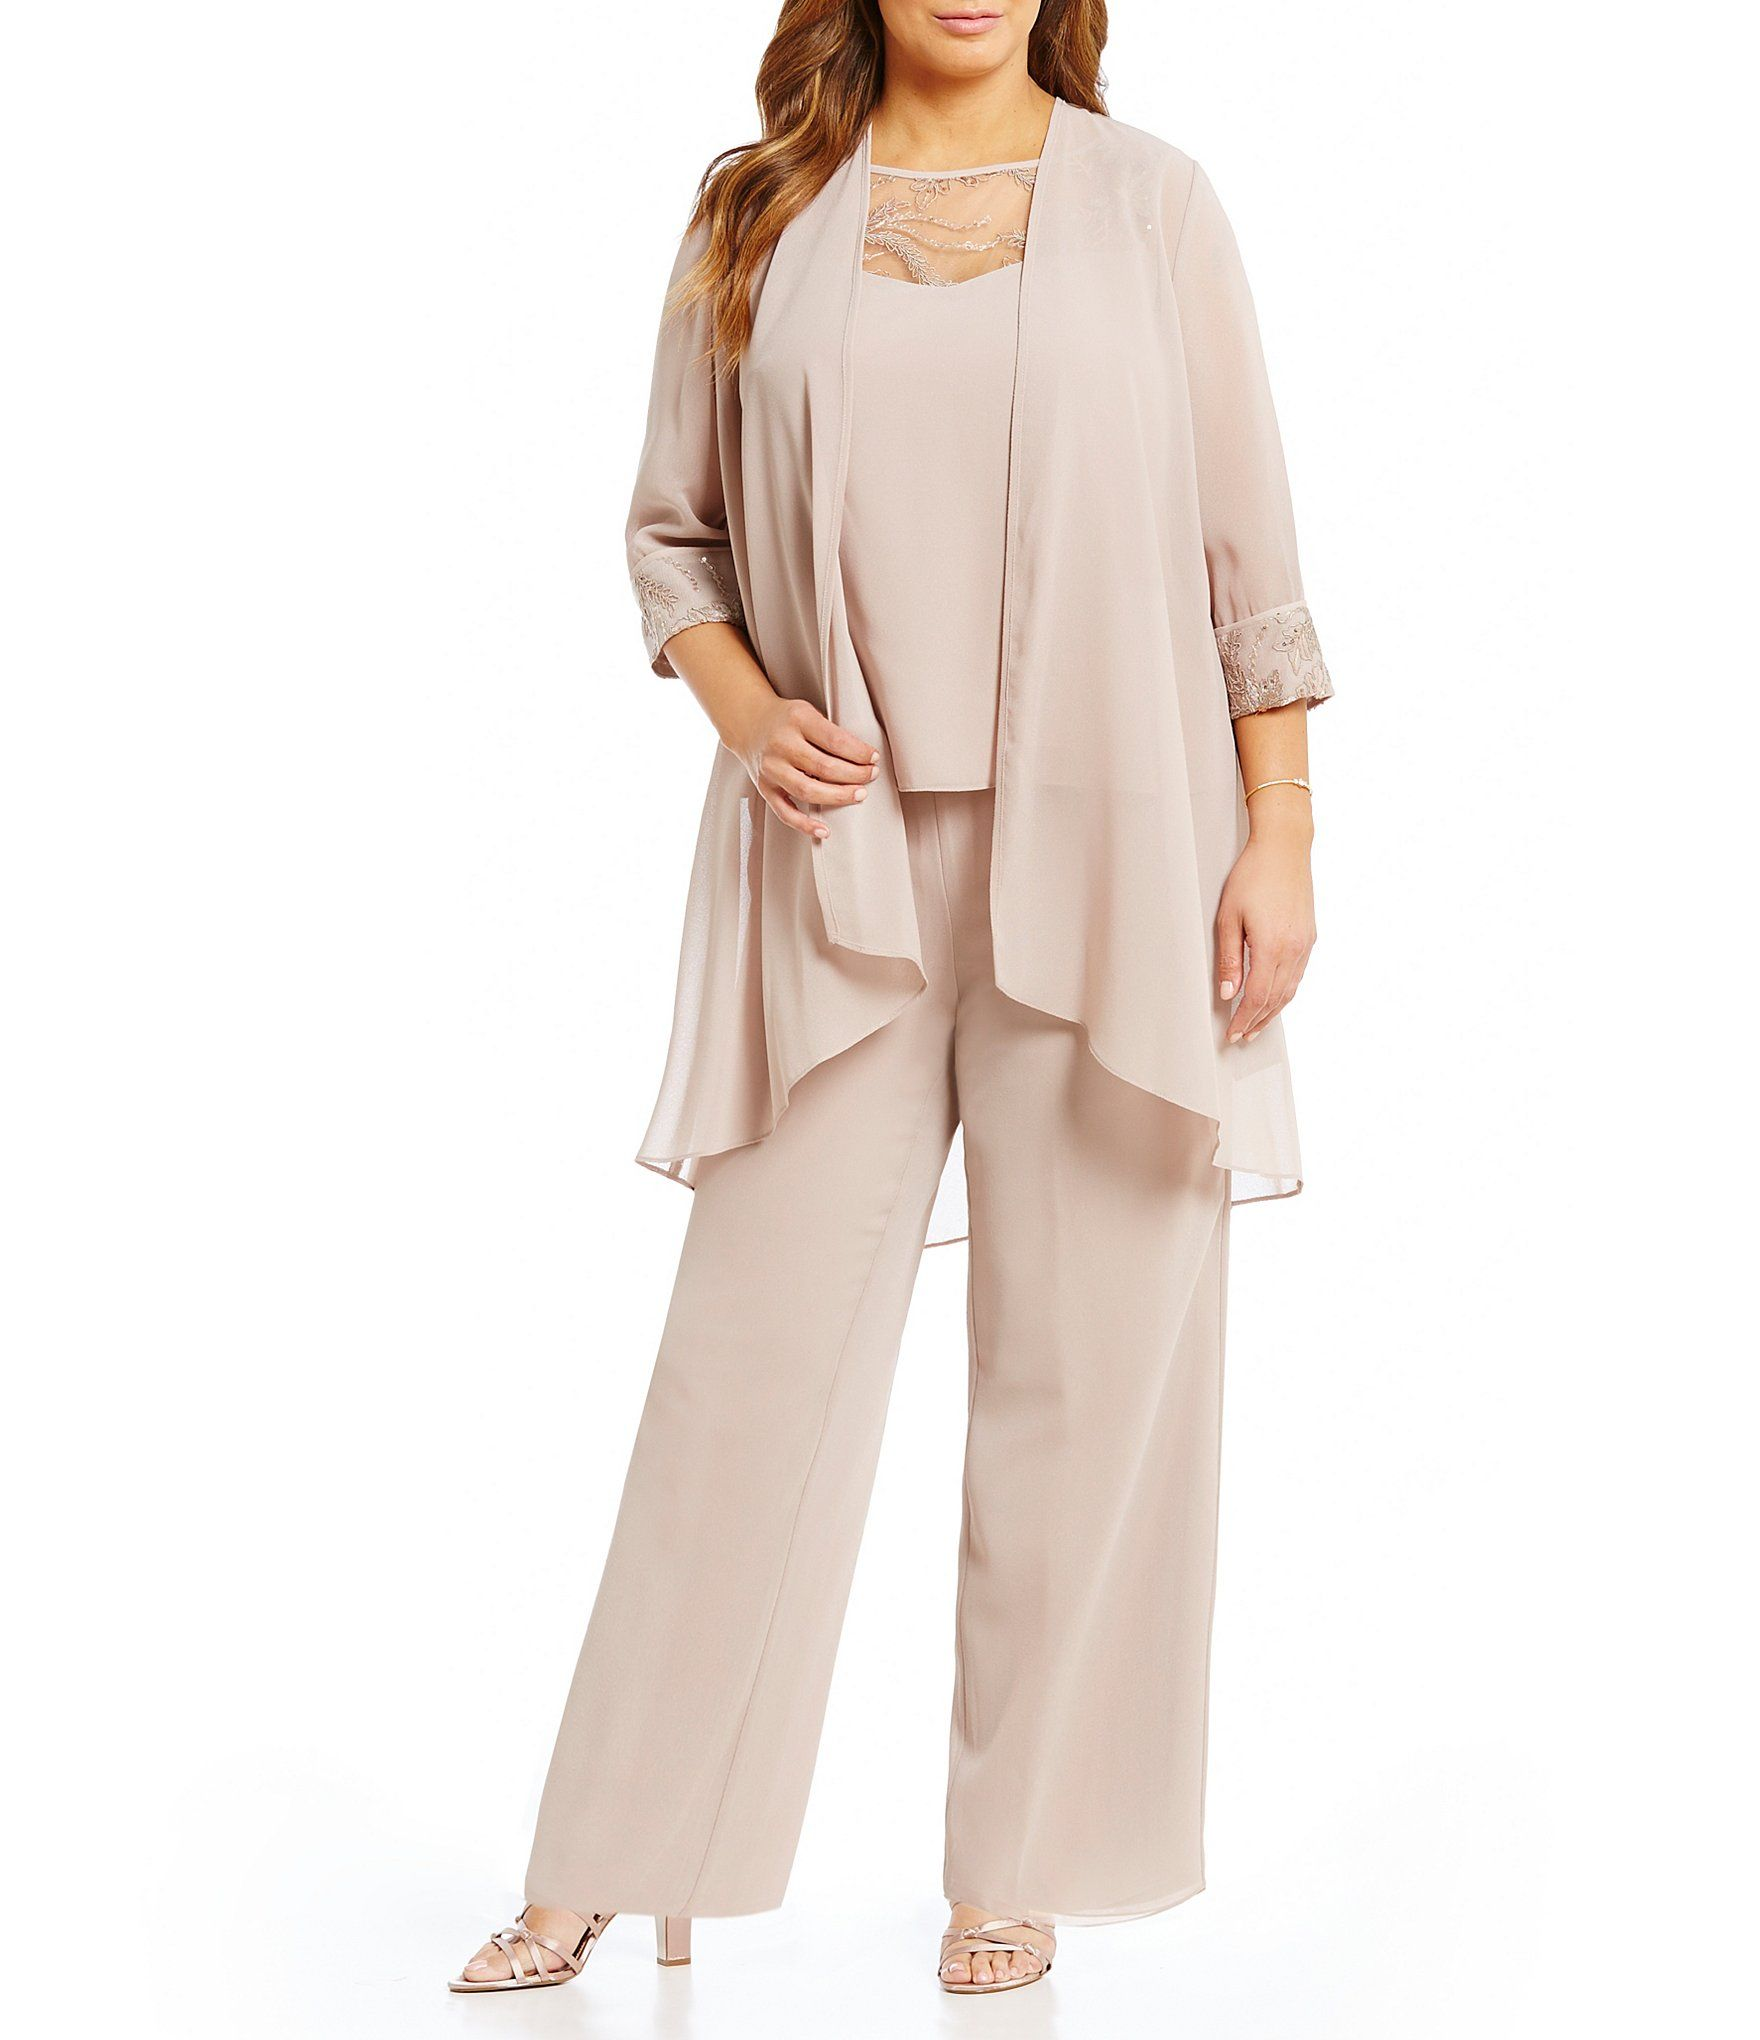 b6abc9b2918 Shop for Le Bos Plus Chiffon Embroidered 3-Piece Pant Set at Dillards.com.  Visit Dillards.com to find clothing